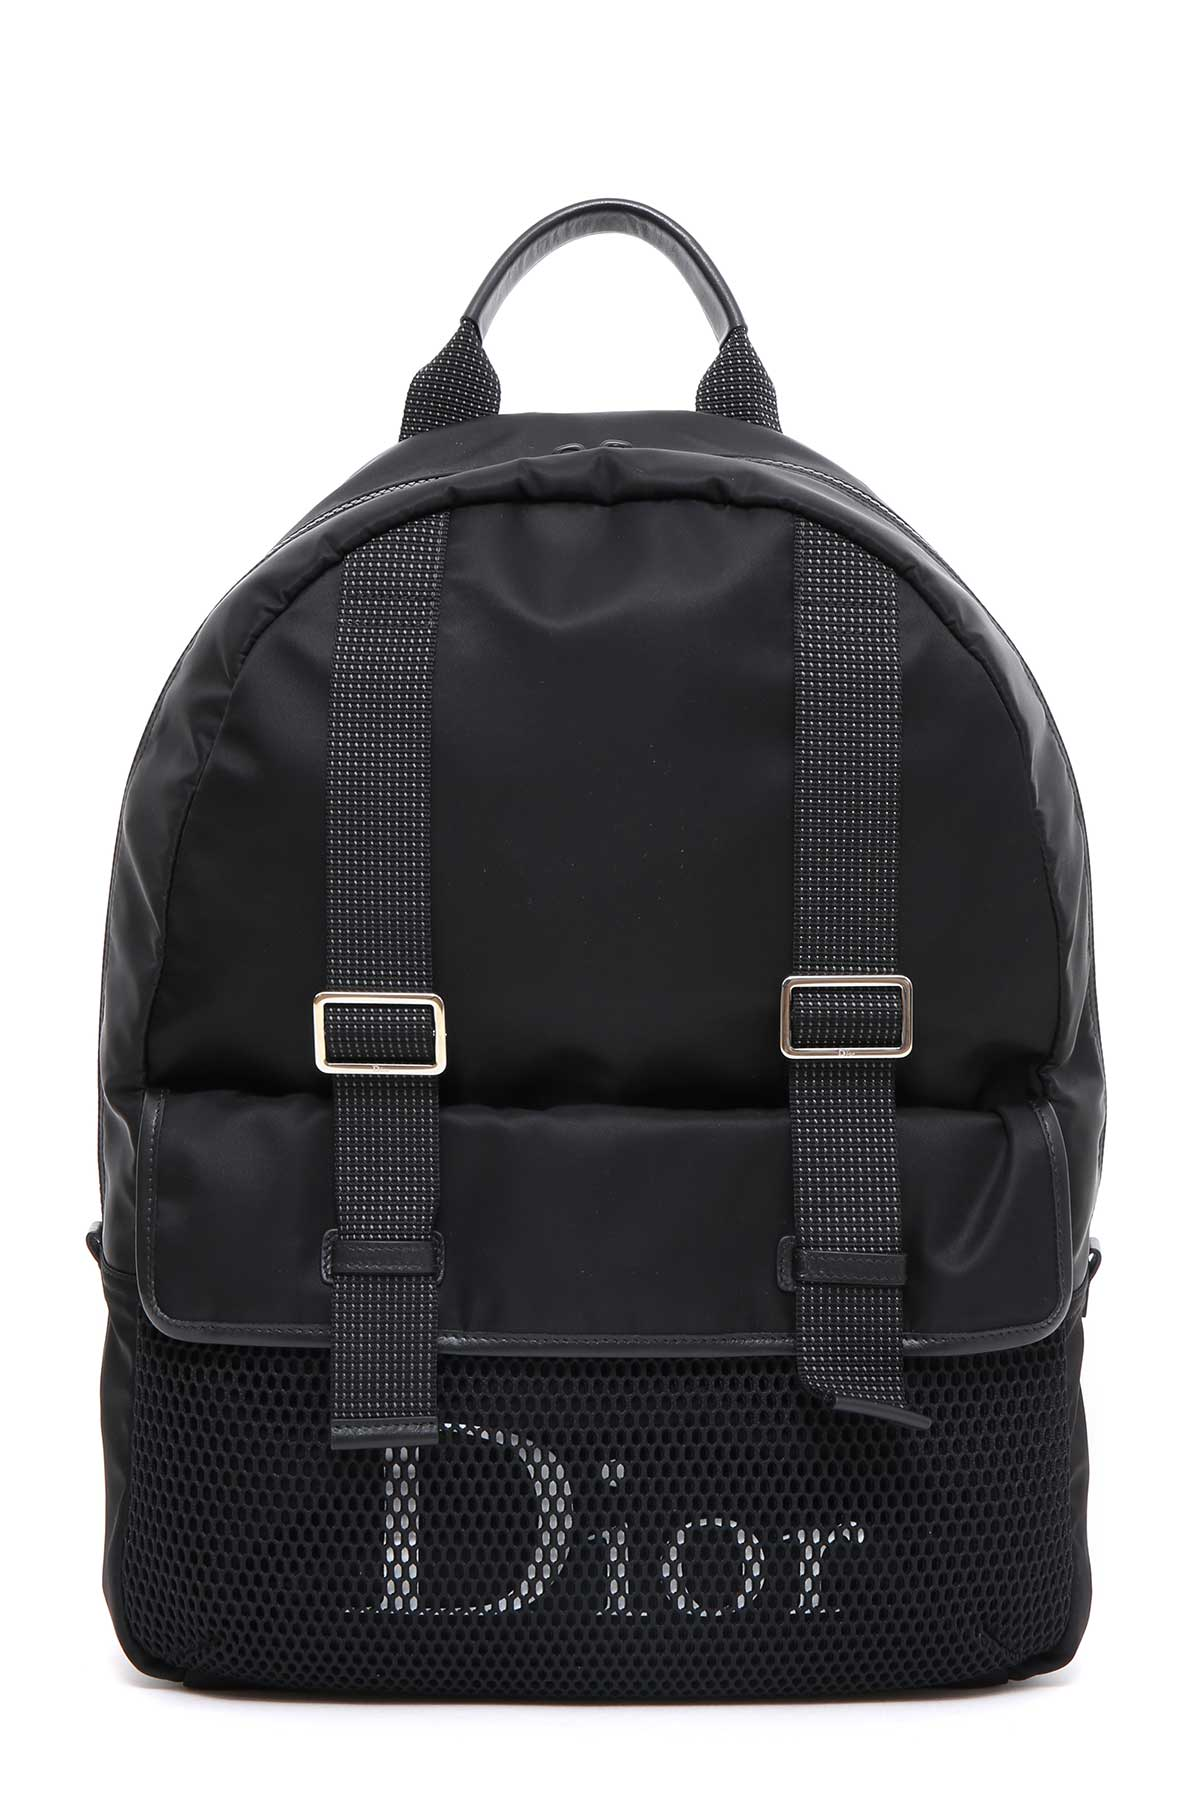 DIOR HOMME PLAYGROUND BACKPACK